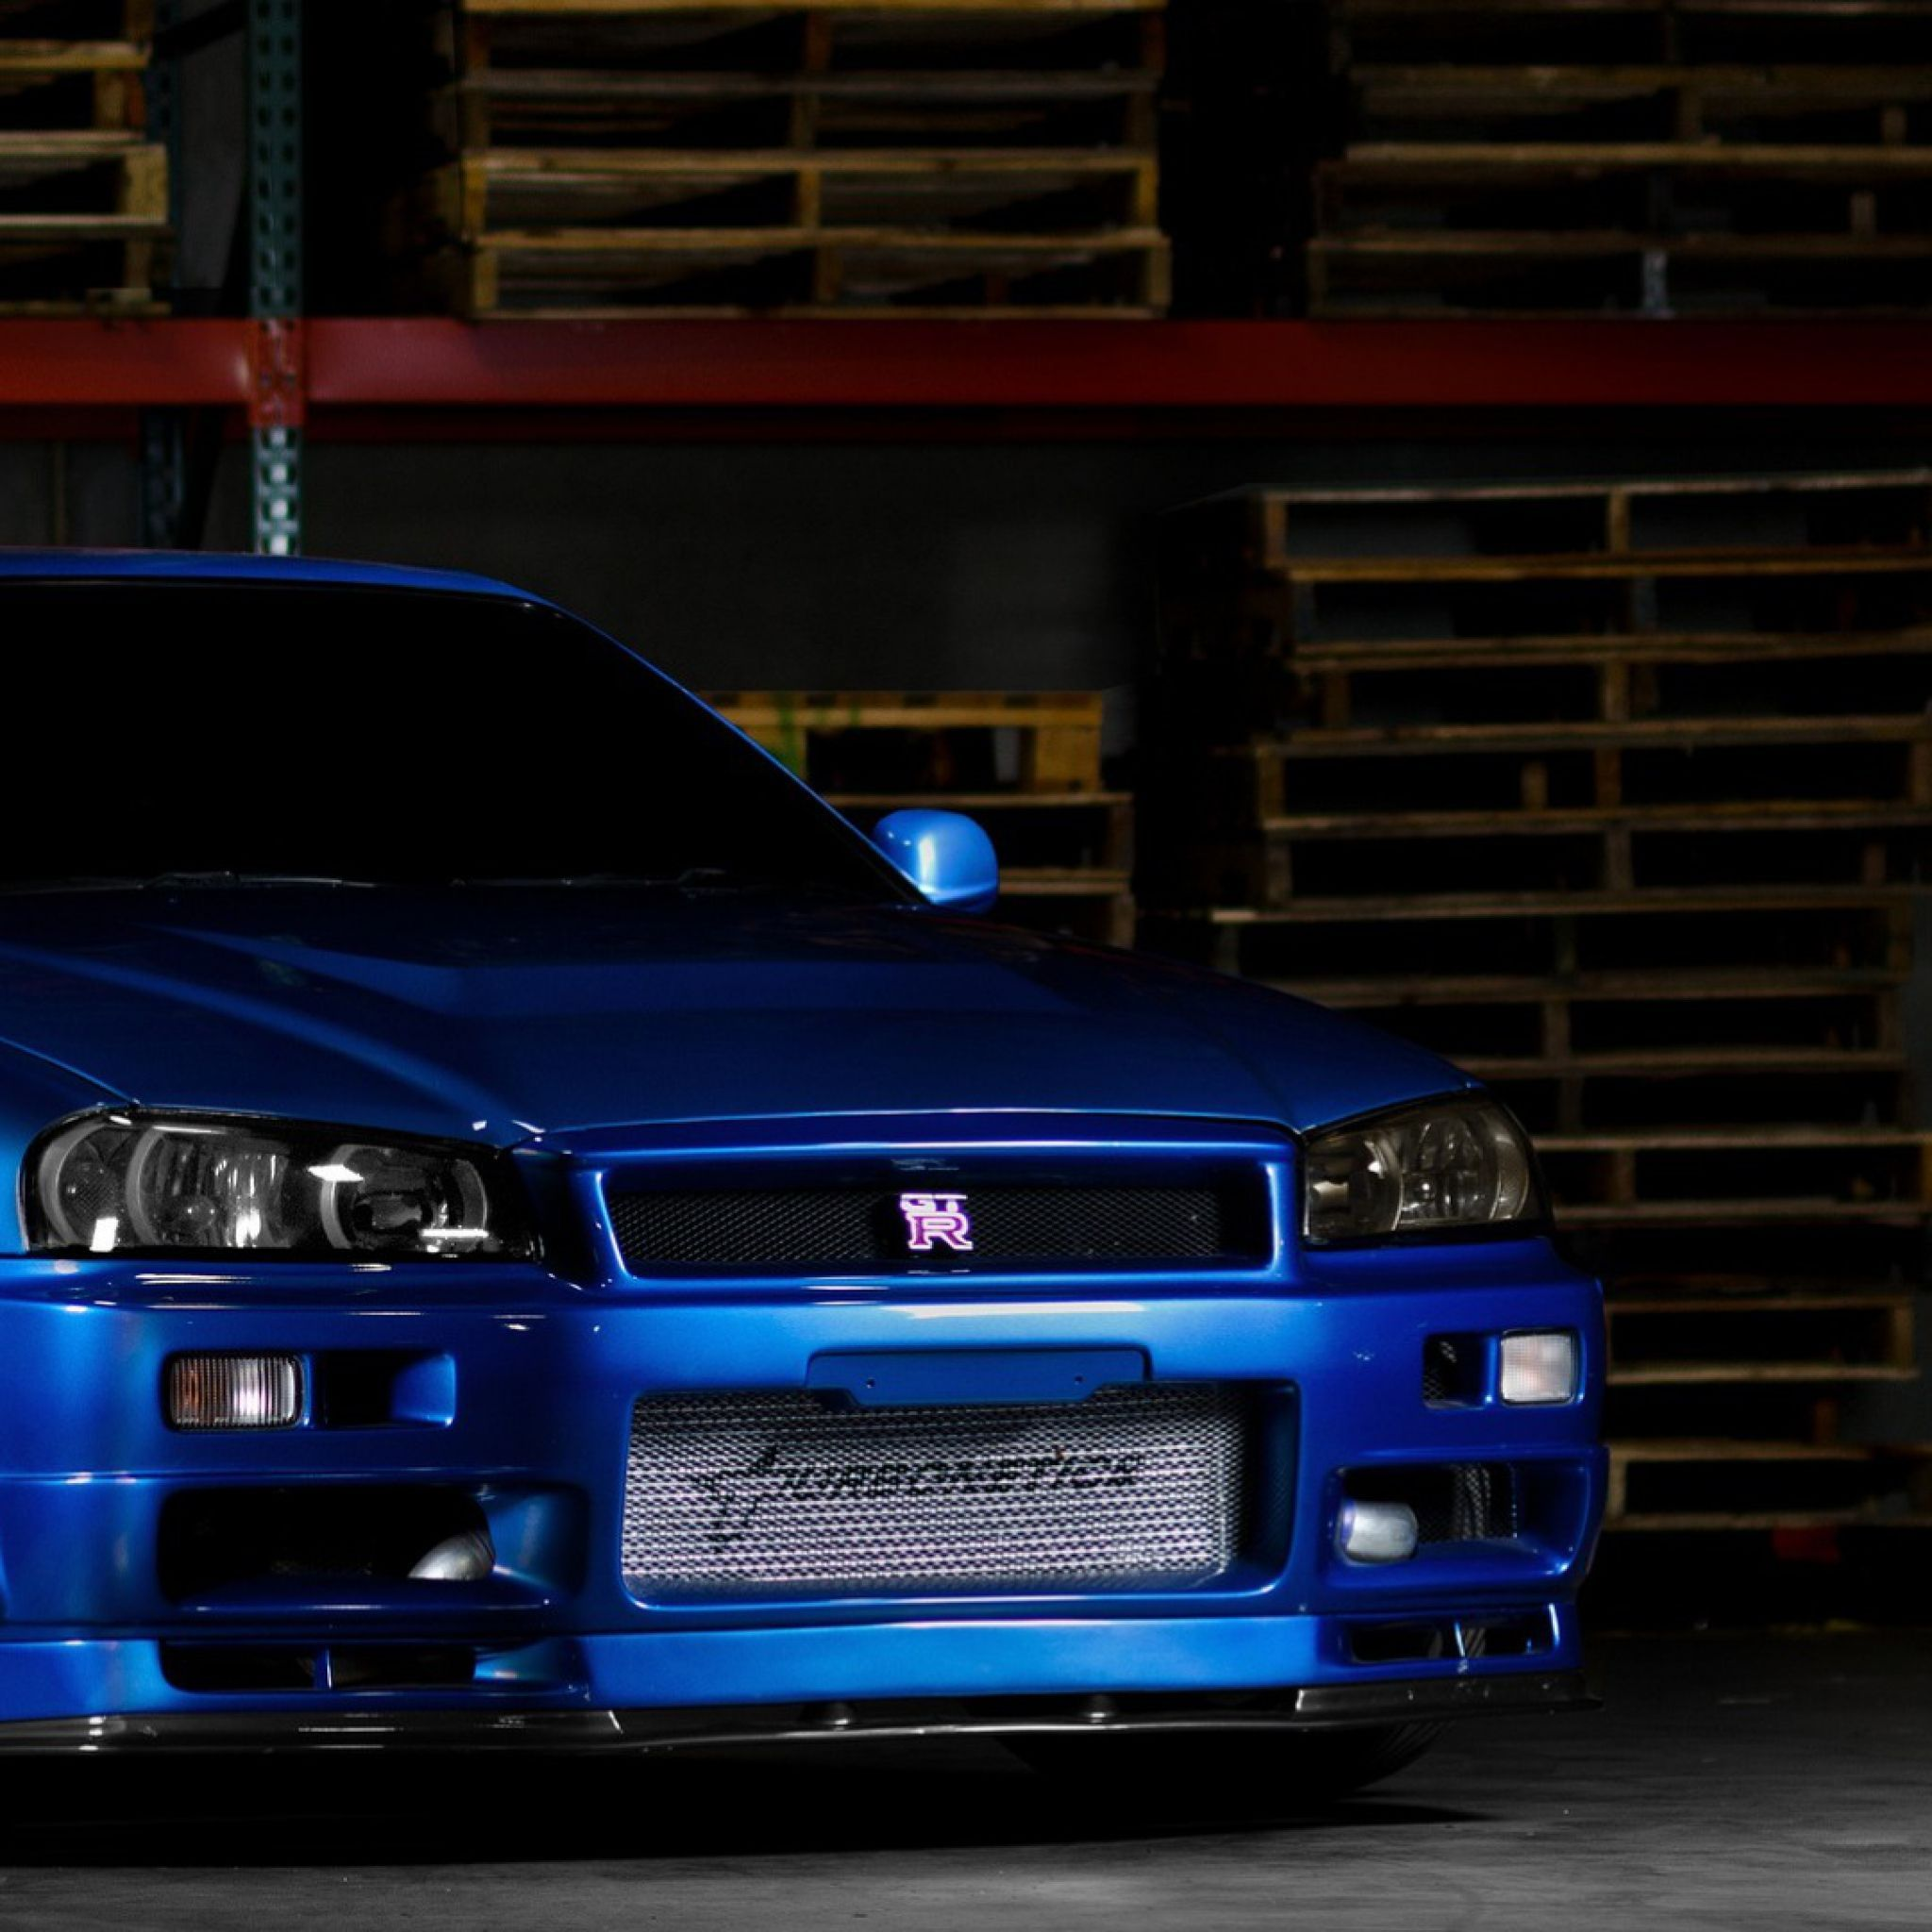 Nissan Skyline GTR R34 JDM Back Water Car 2013 « El Tony | Download  Wallpaper | Pinterest | Skyline Gtr R34